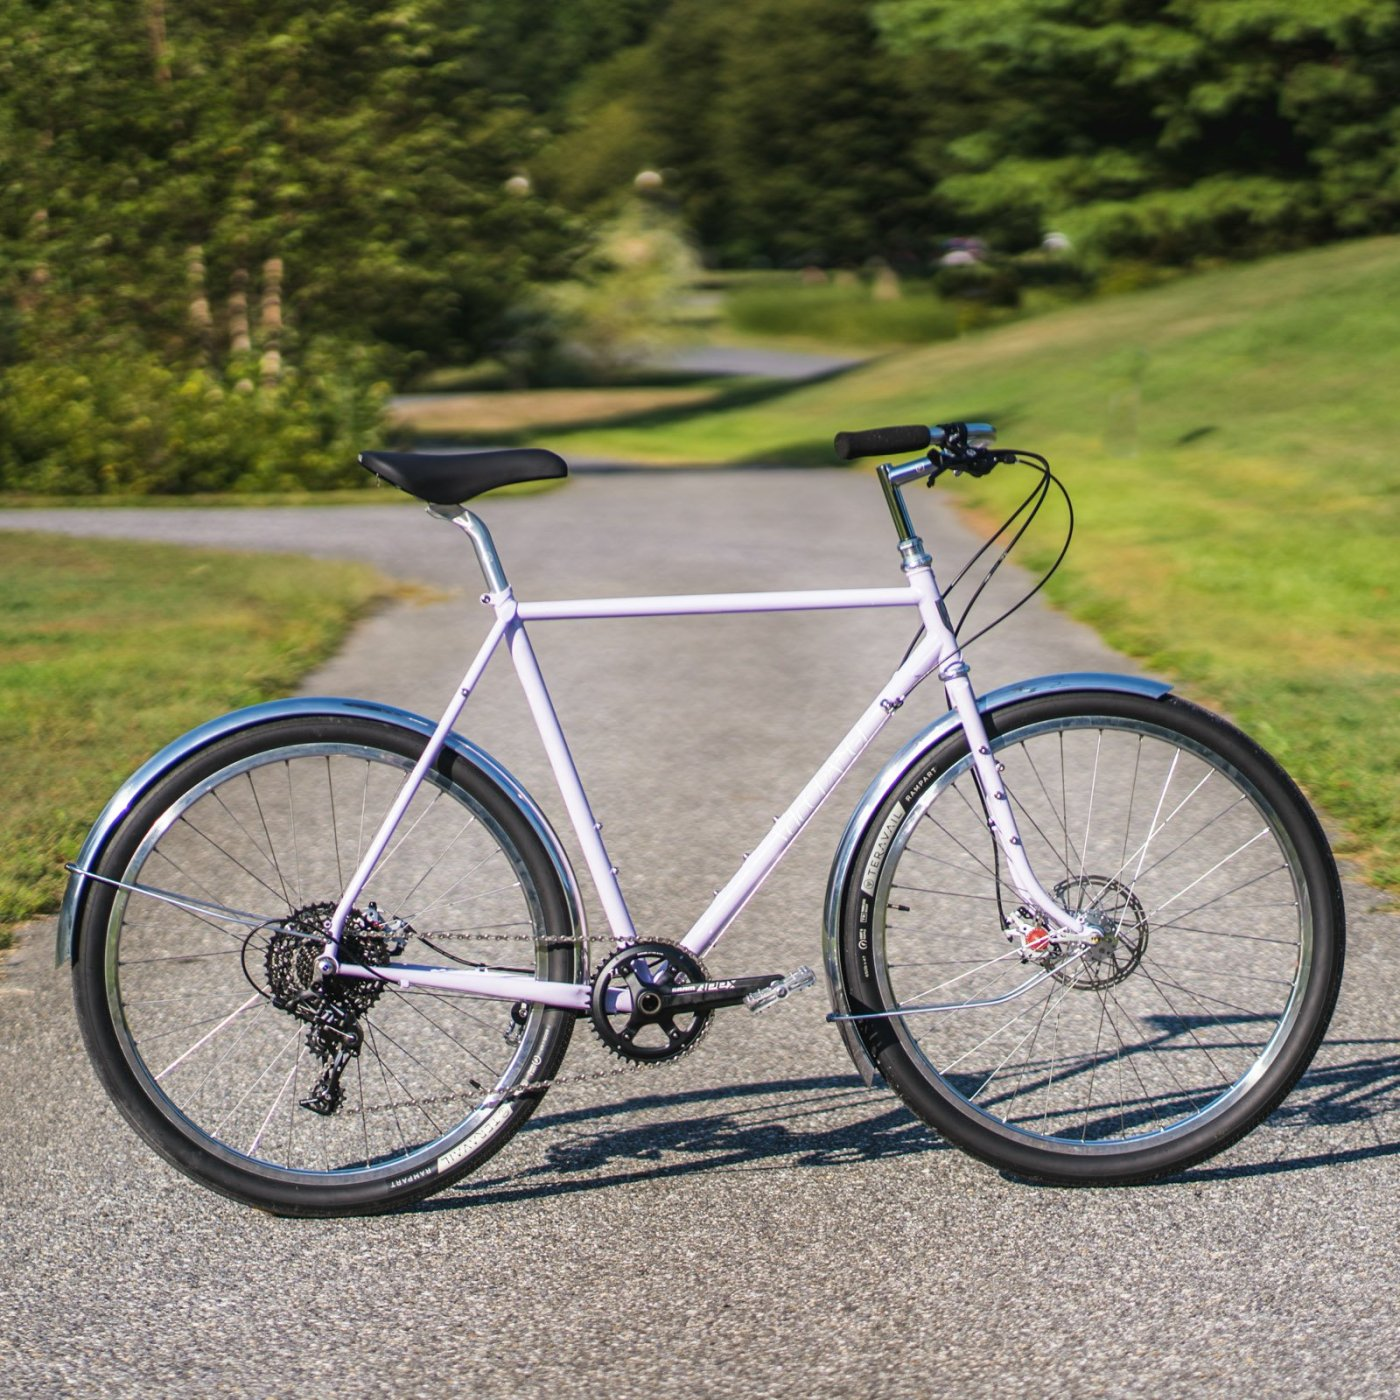 Velo Orange Piolet and Polyvalent Now Offered as Complete Bikes 3